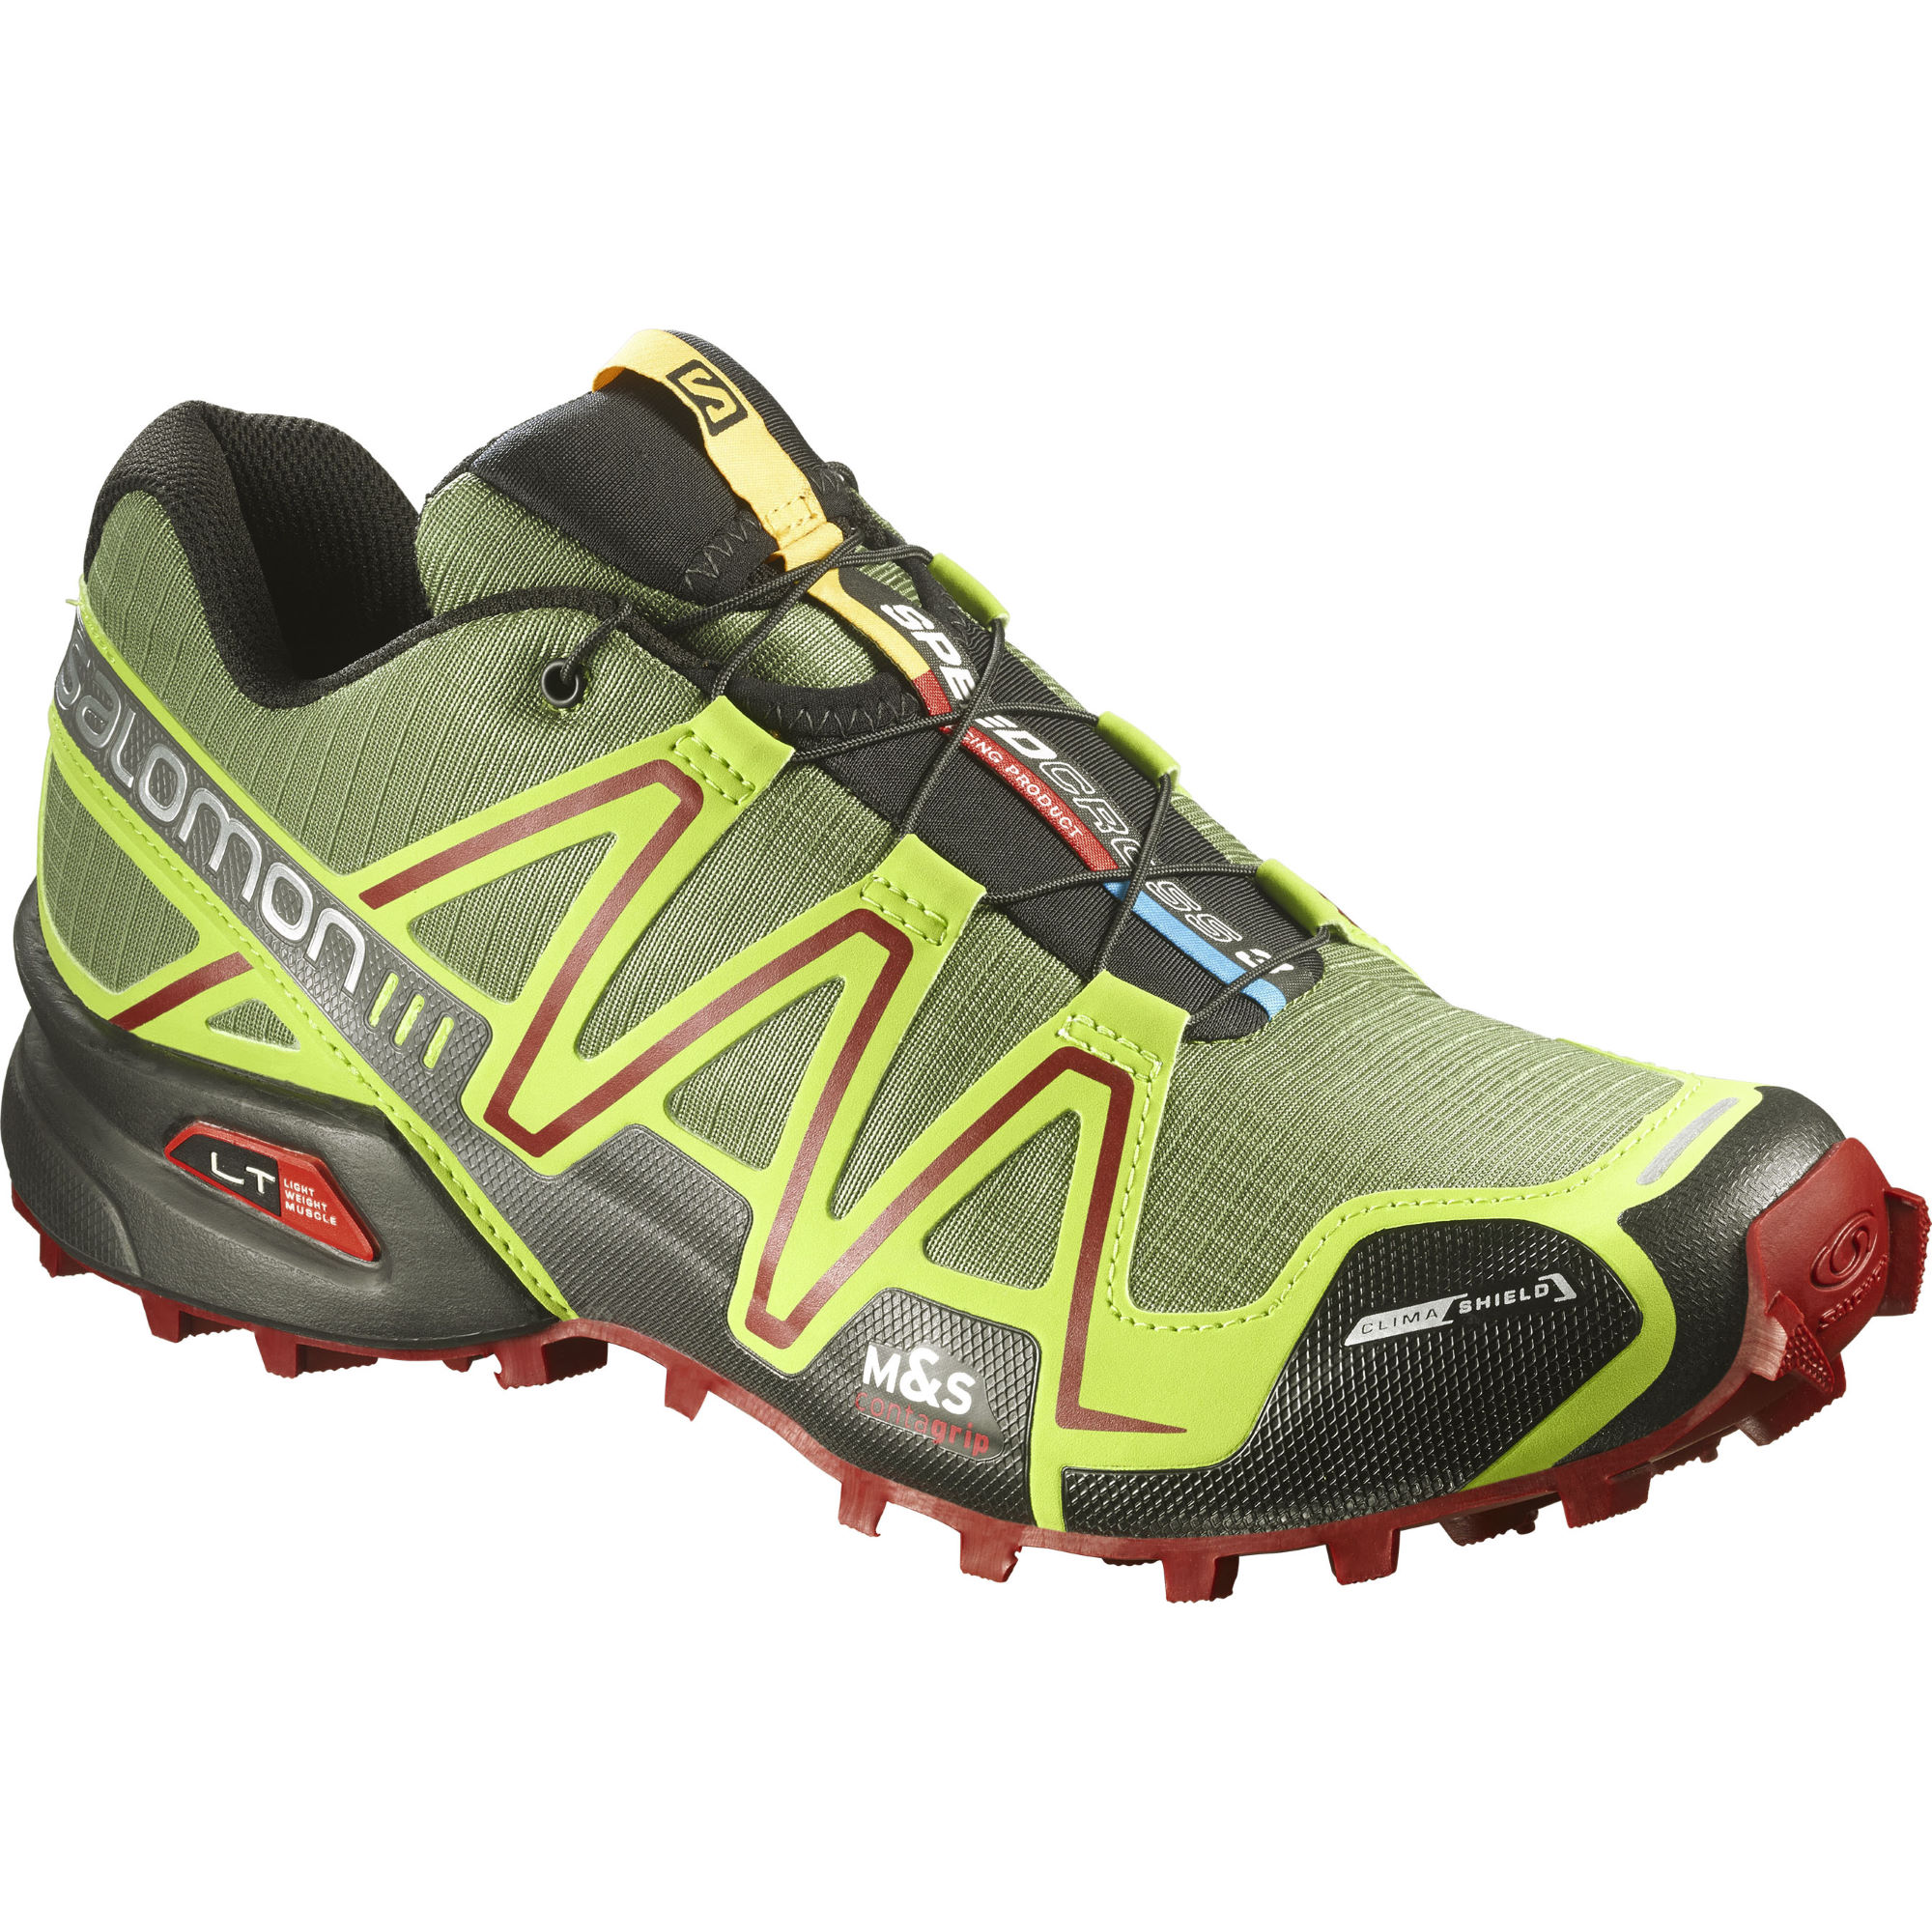 wiggle salomon speedcross 3 cs shoes aw15 offroad. Black Bedroom Furniture Sets. Home Design Ideas